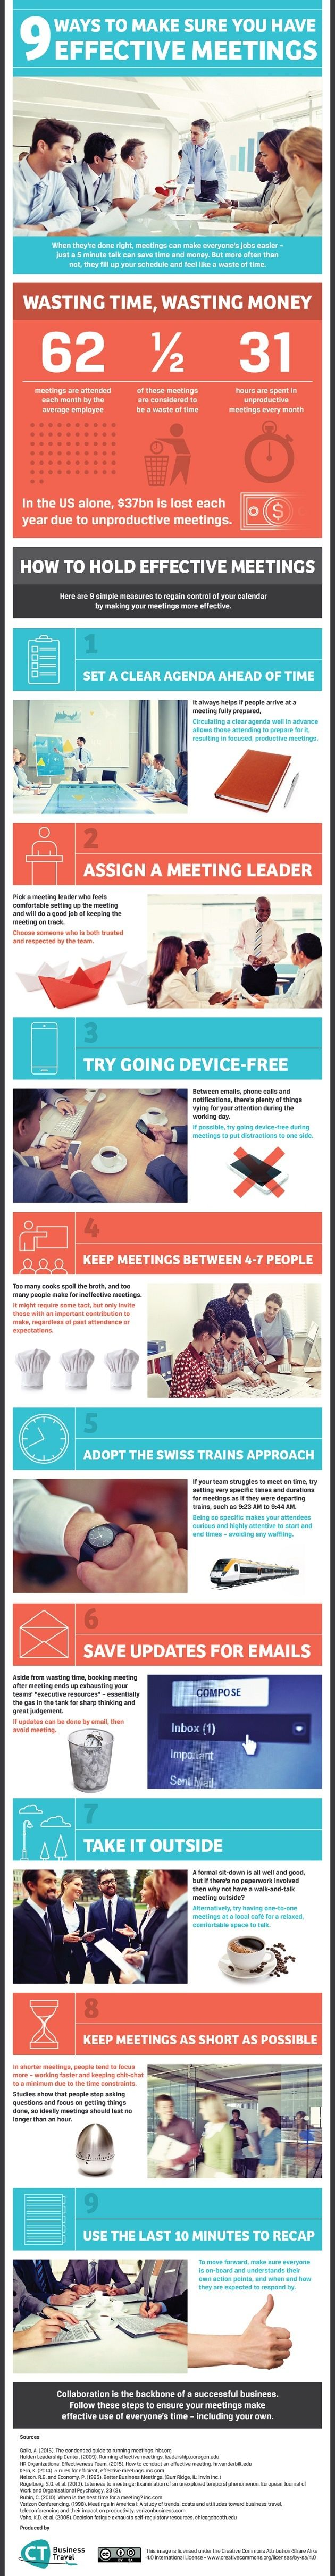 Kick those wasteful meetings to the curb. This infographic provides nine ways to make them effective.